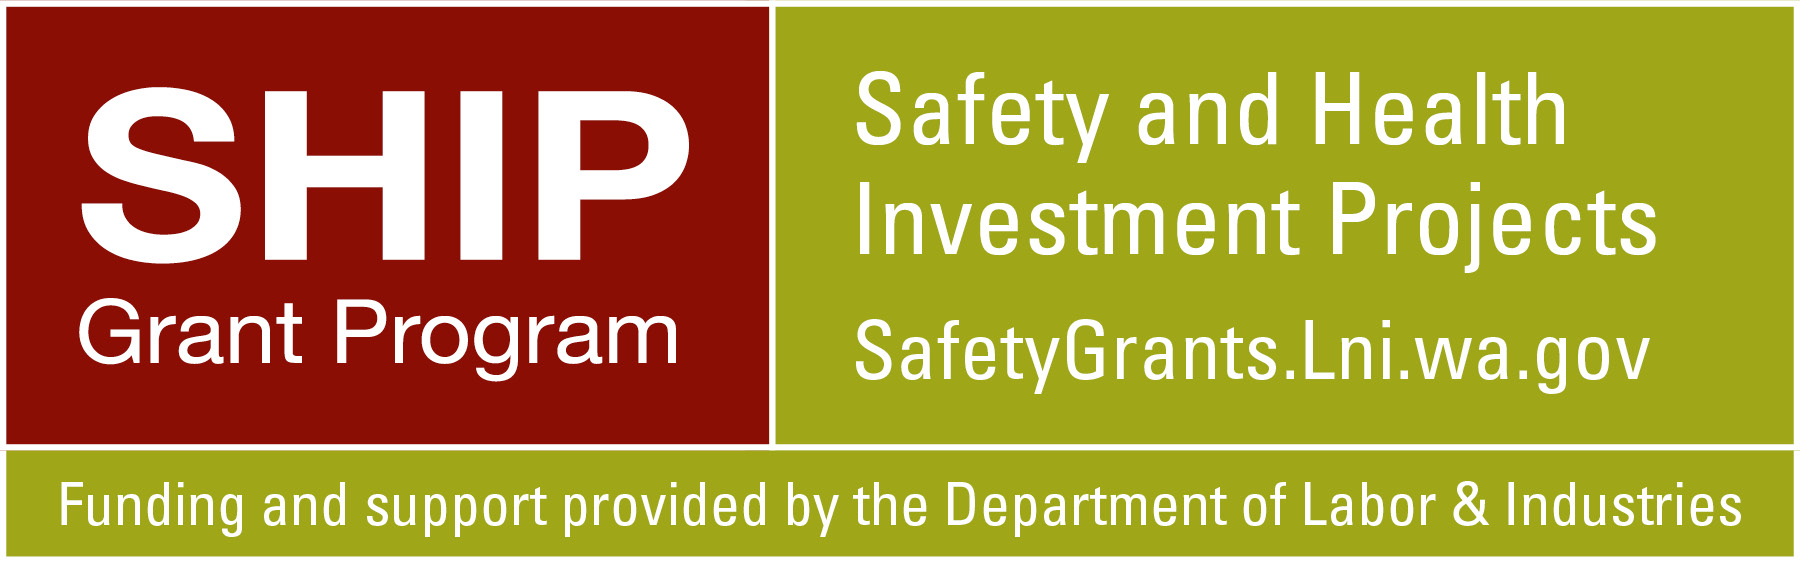 Logo for Safety and Health Investment Projects